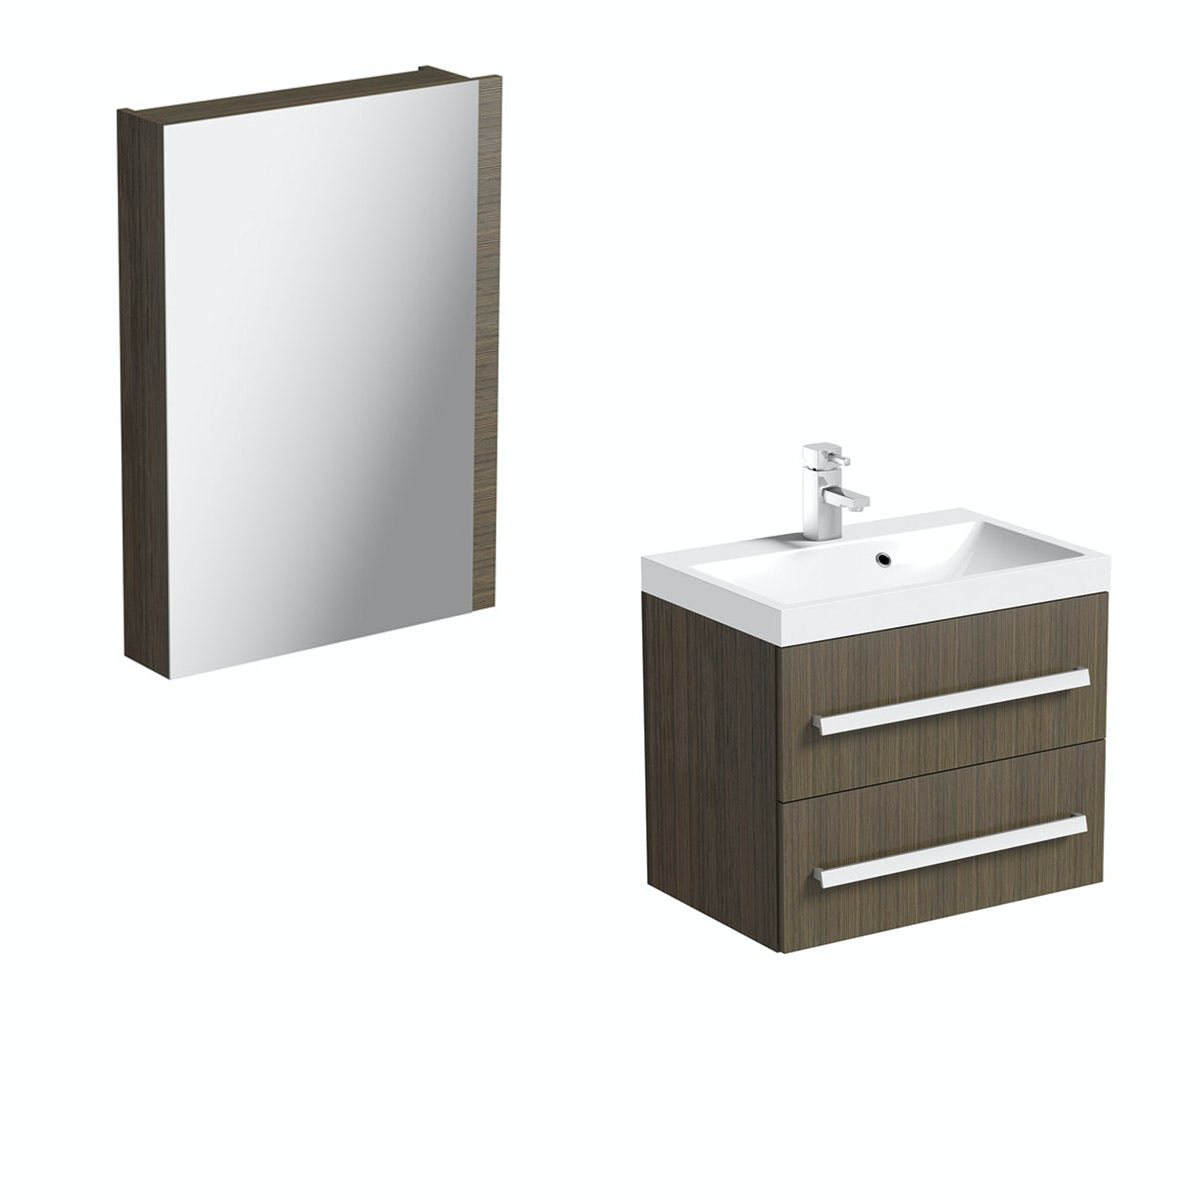 Orchard Wye walnut wall hung vanity unit and mirror offer 600mm